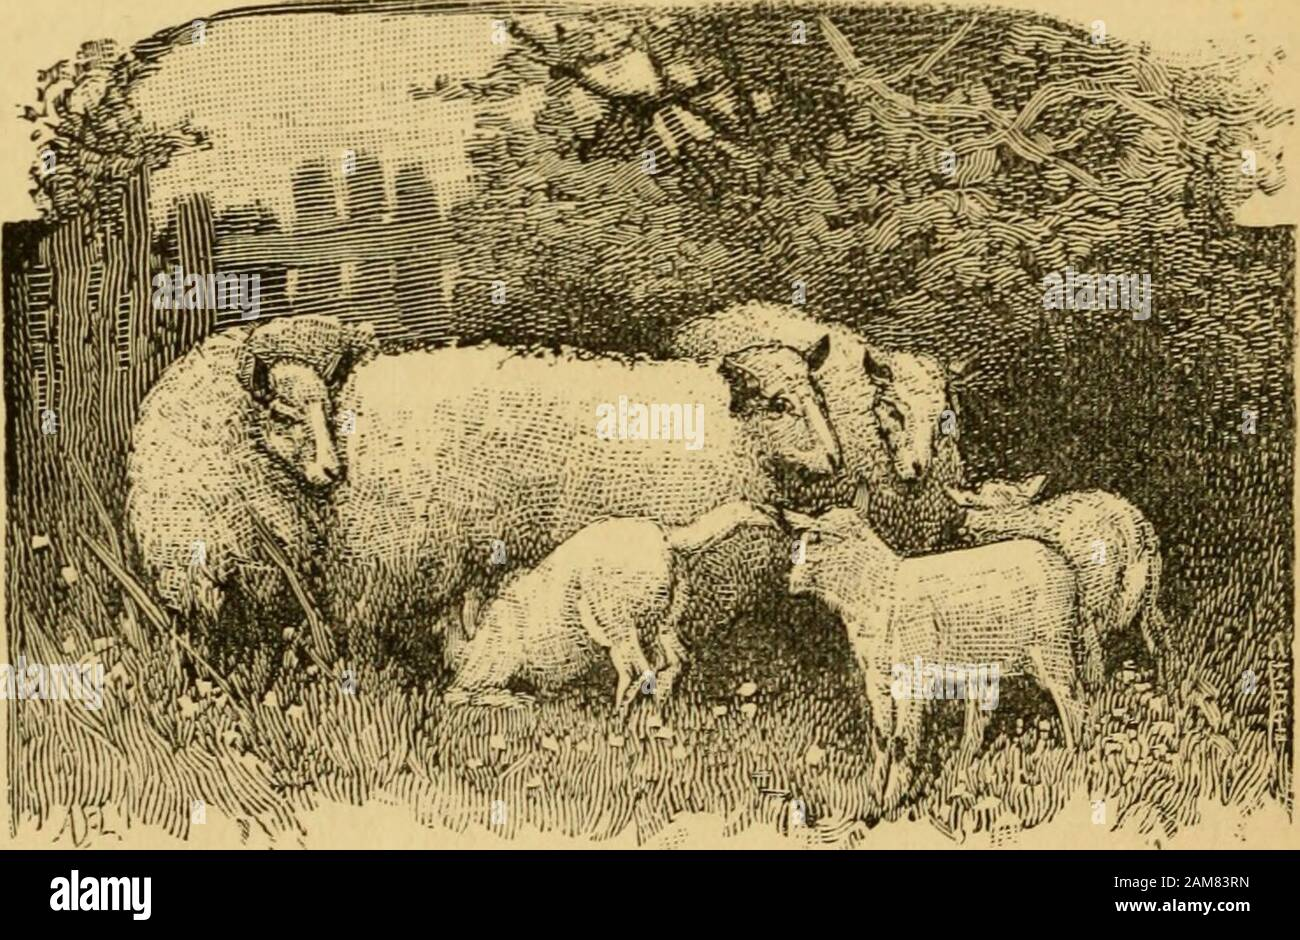 Sheep Breeds And Management Australian Merino Wool About 4in Long And Of Fine Appearance But Not So Dense In The Pileas The Saxony Rambouillet Nor Yet So Full Of Fat I6